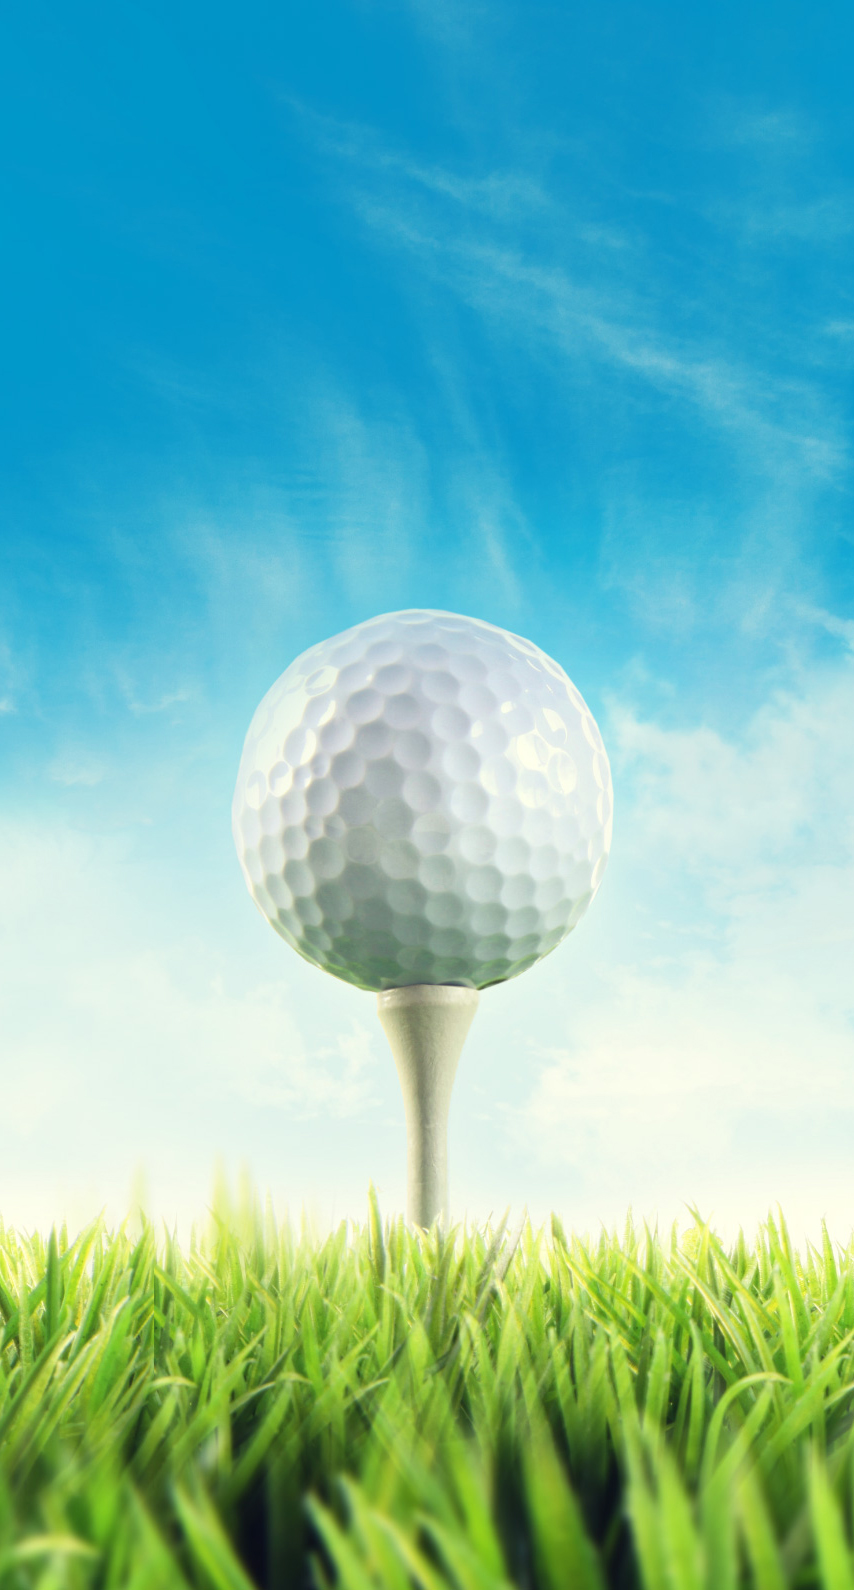 golf ball, golf equipment